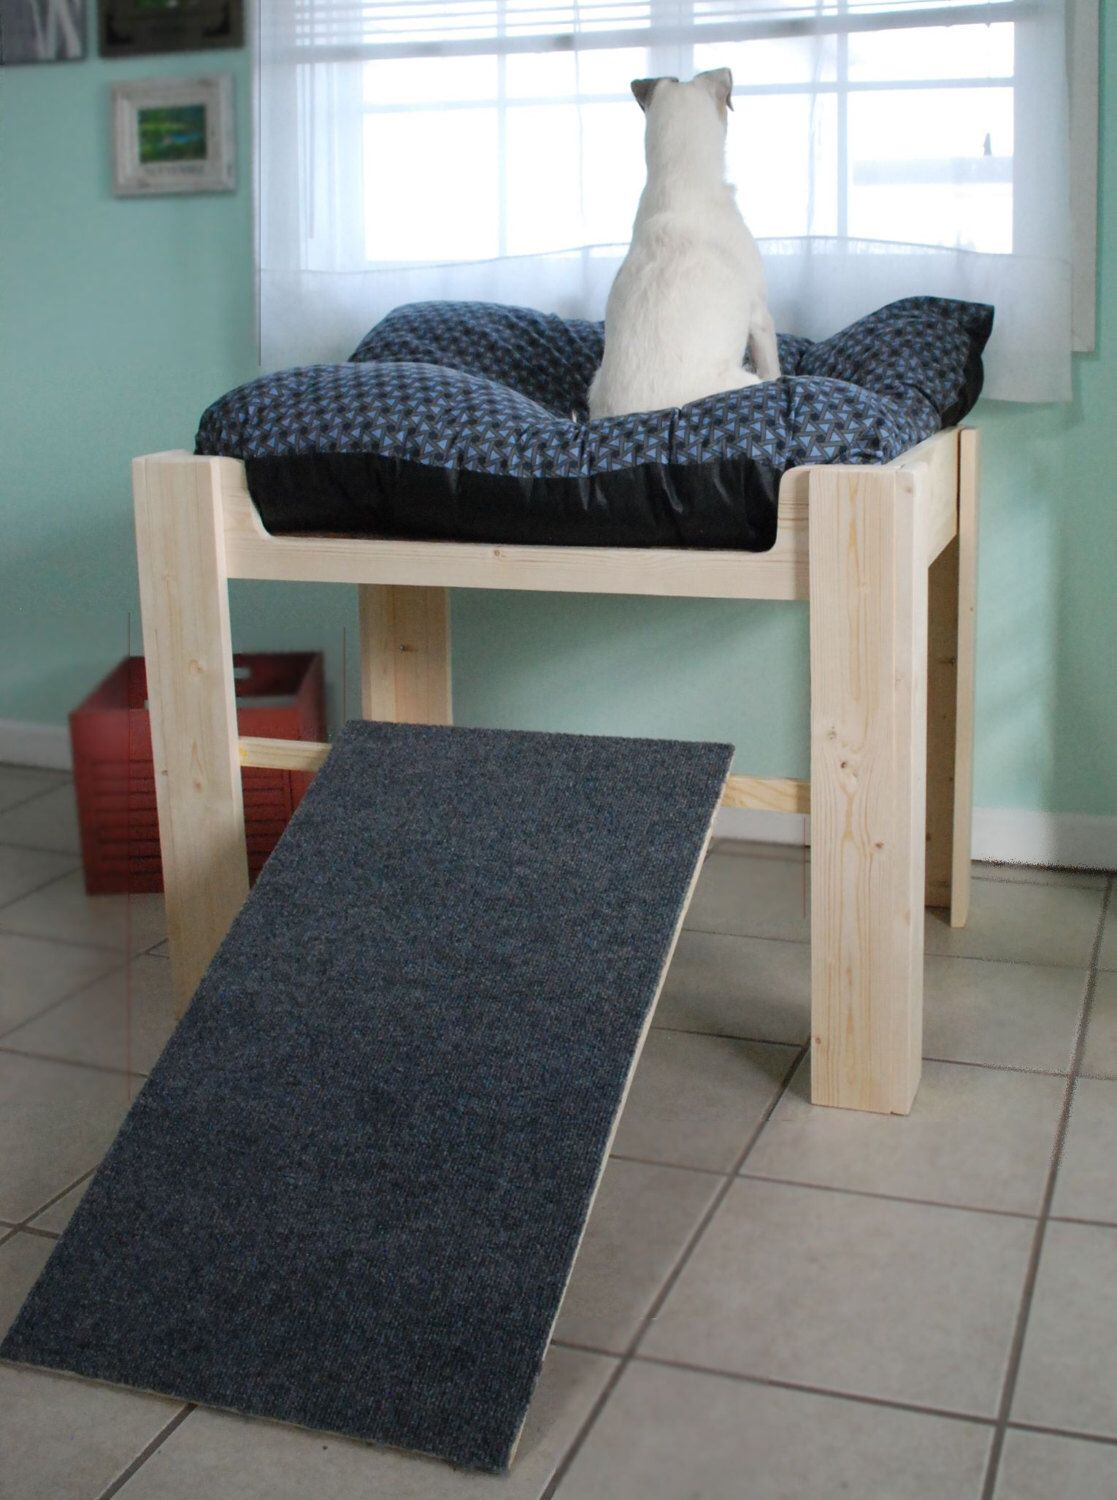 Handmade Wood Raised Dog Bed Elevated Dog Bed Dog Bed